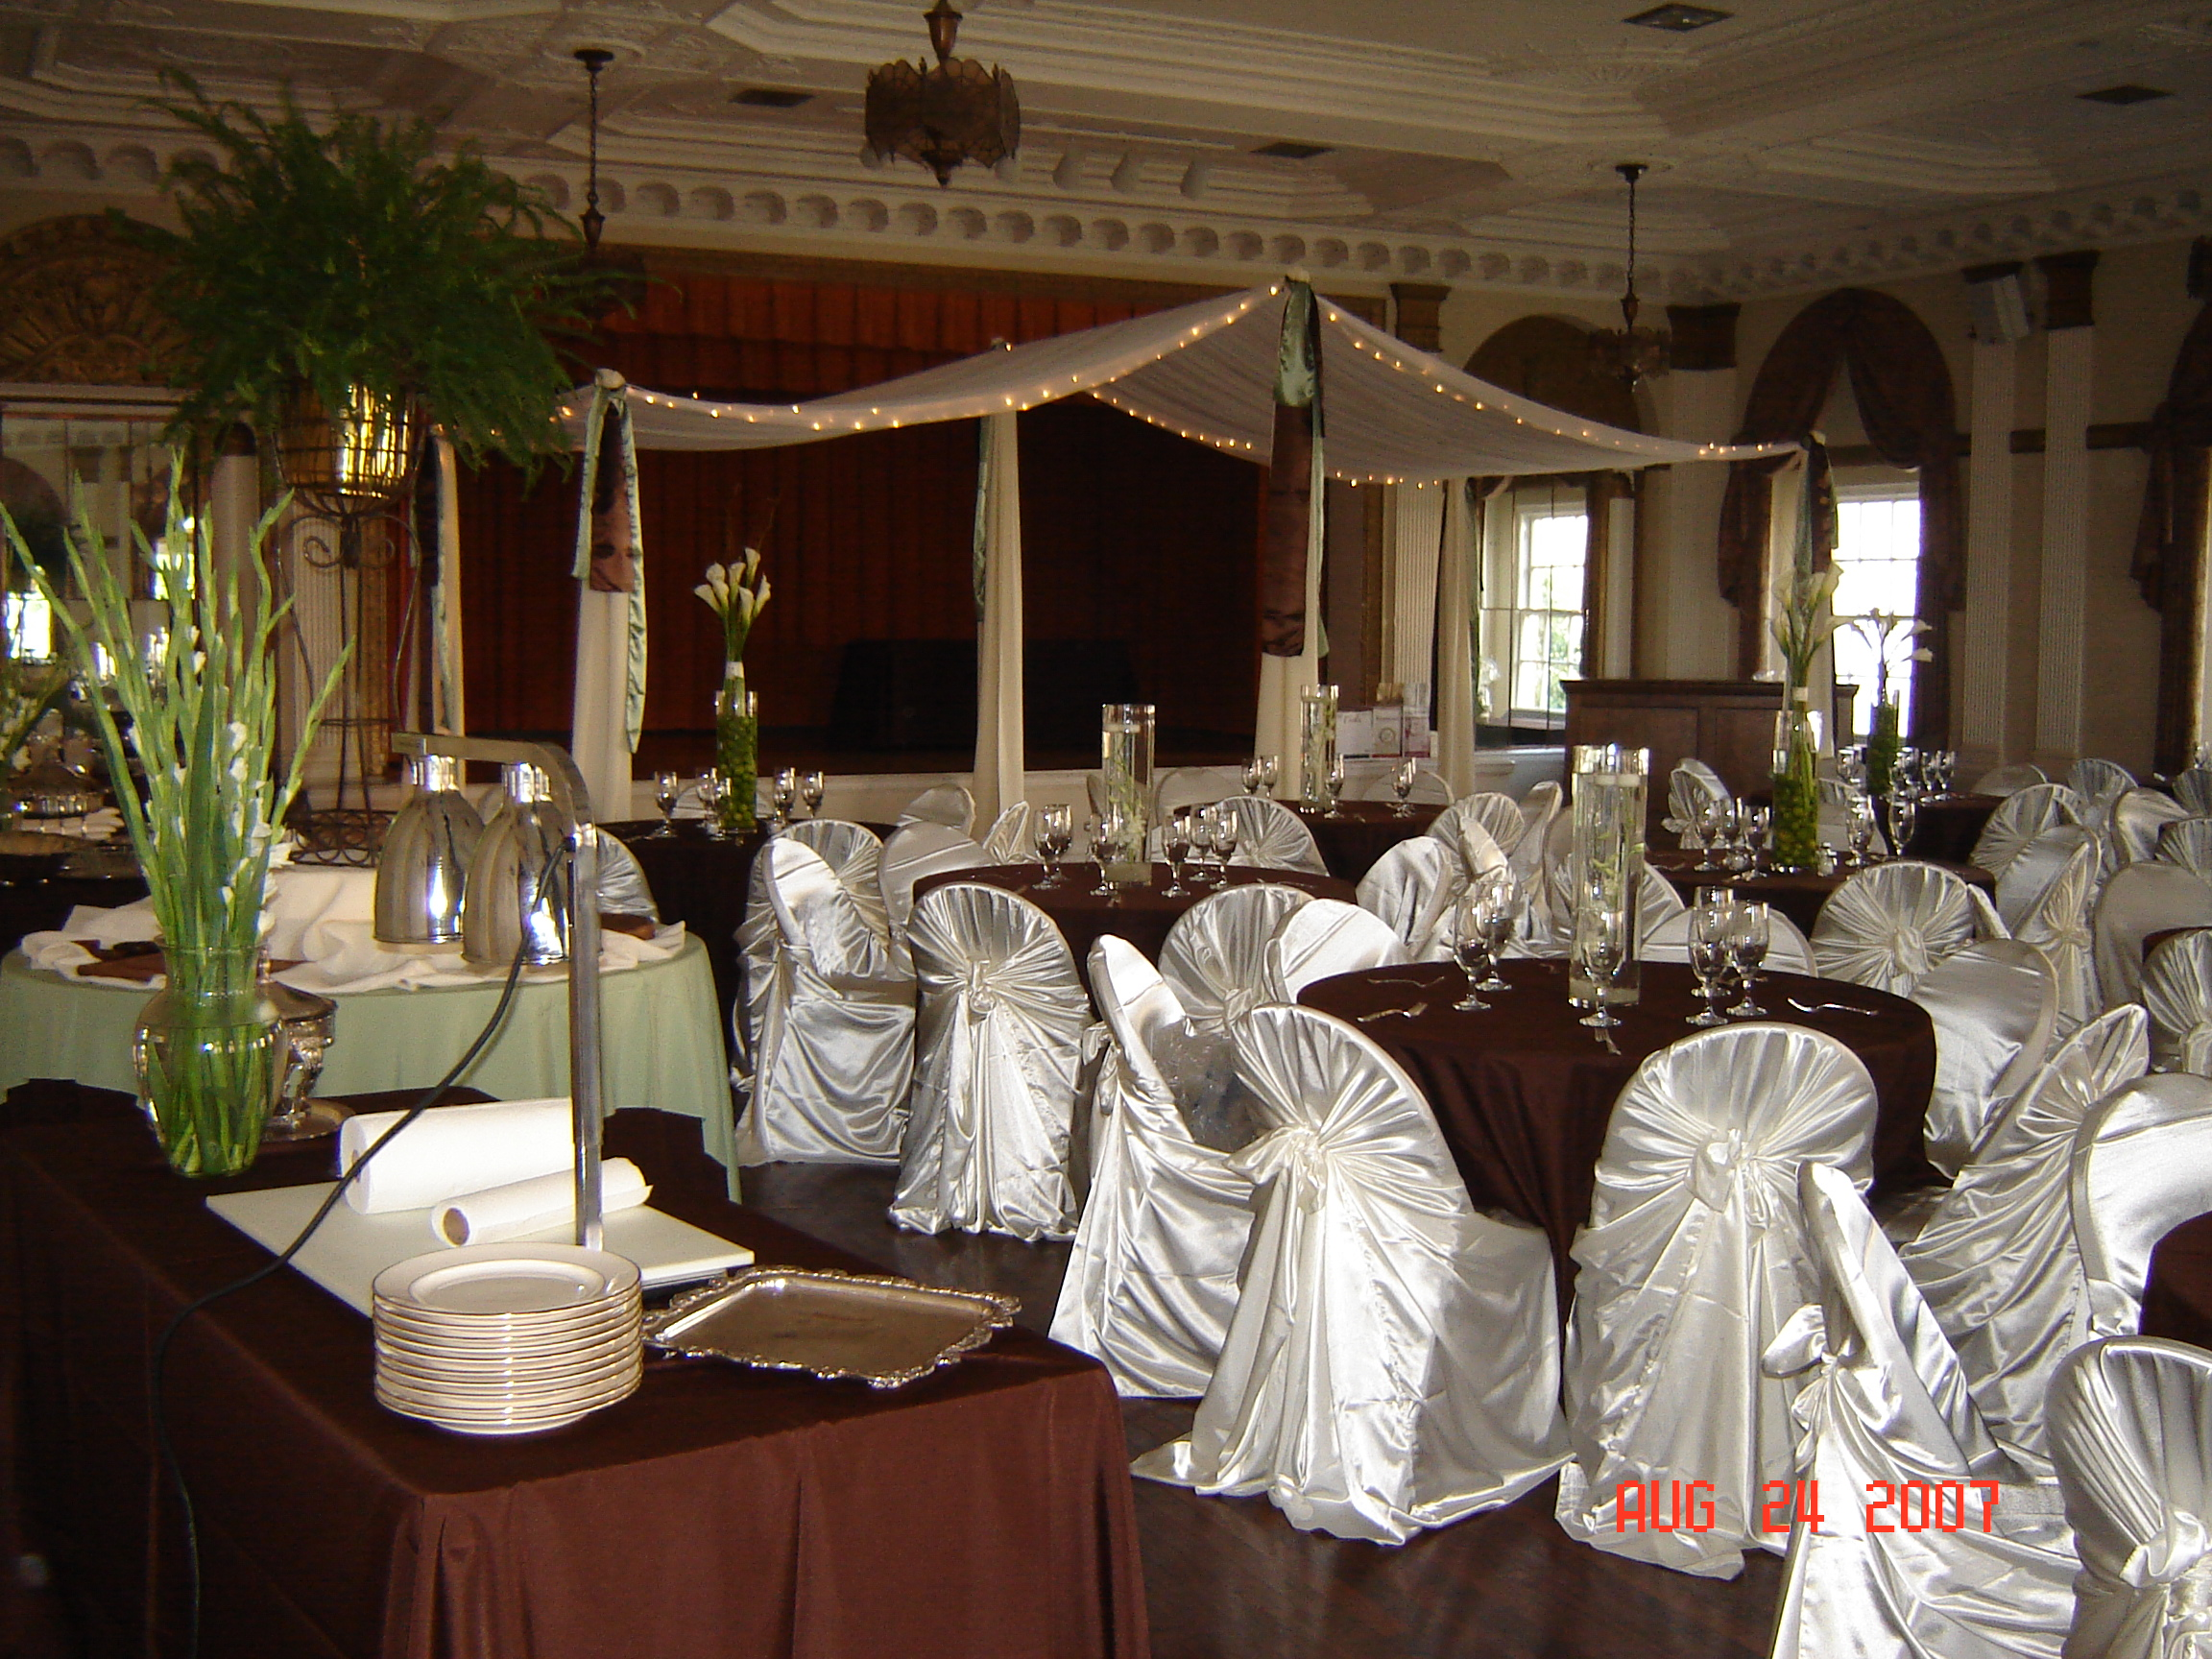 chair cover rentals dallas texas spandex folding covers amazon simply elegant weddings cake stands silver gold